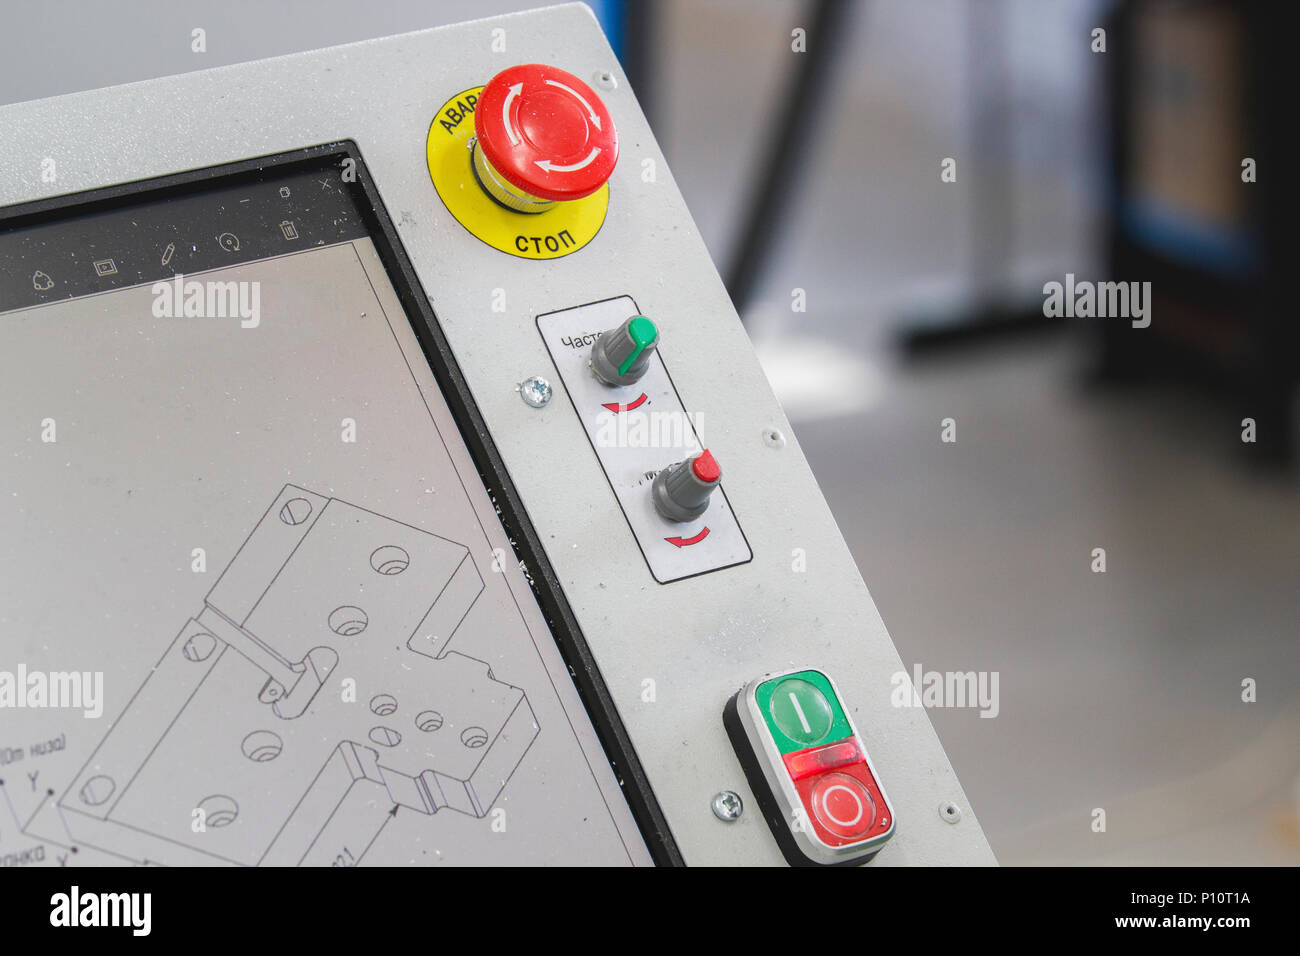 Emergency red stop button at industrial plant - Stock Image